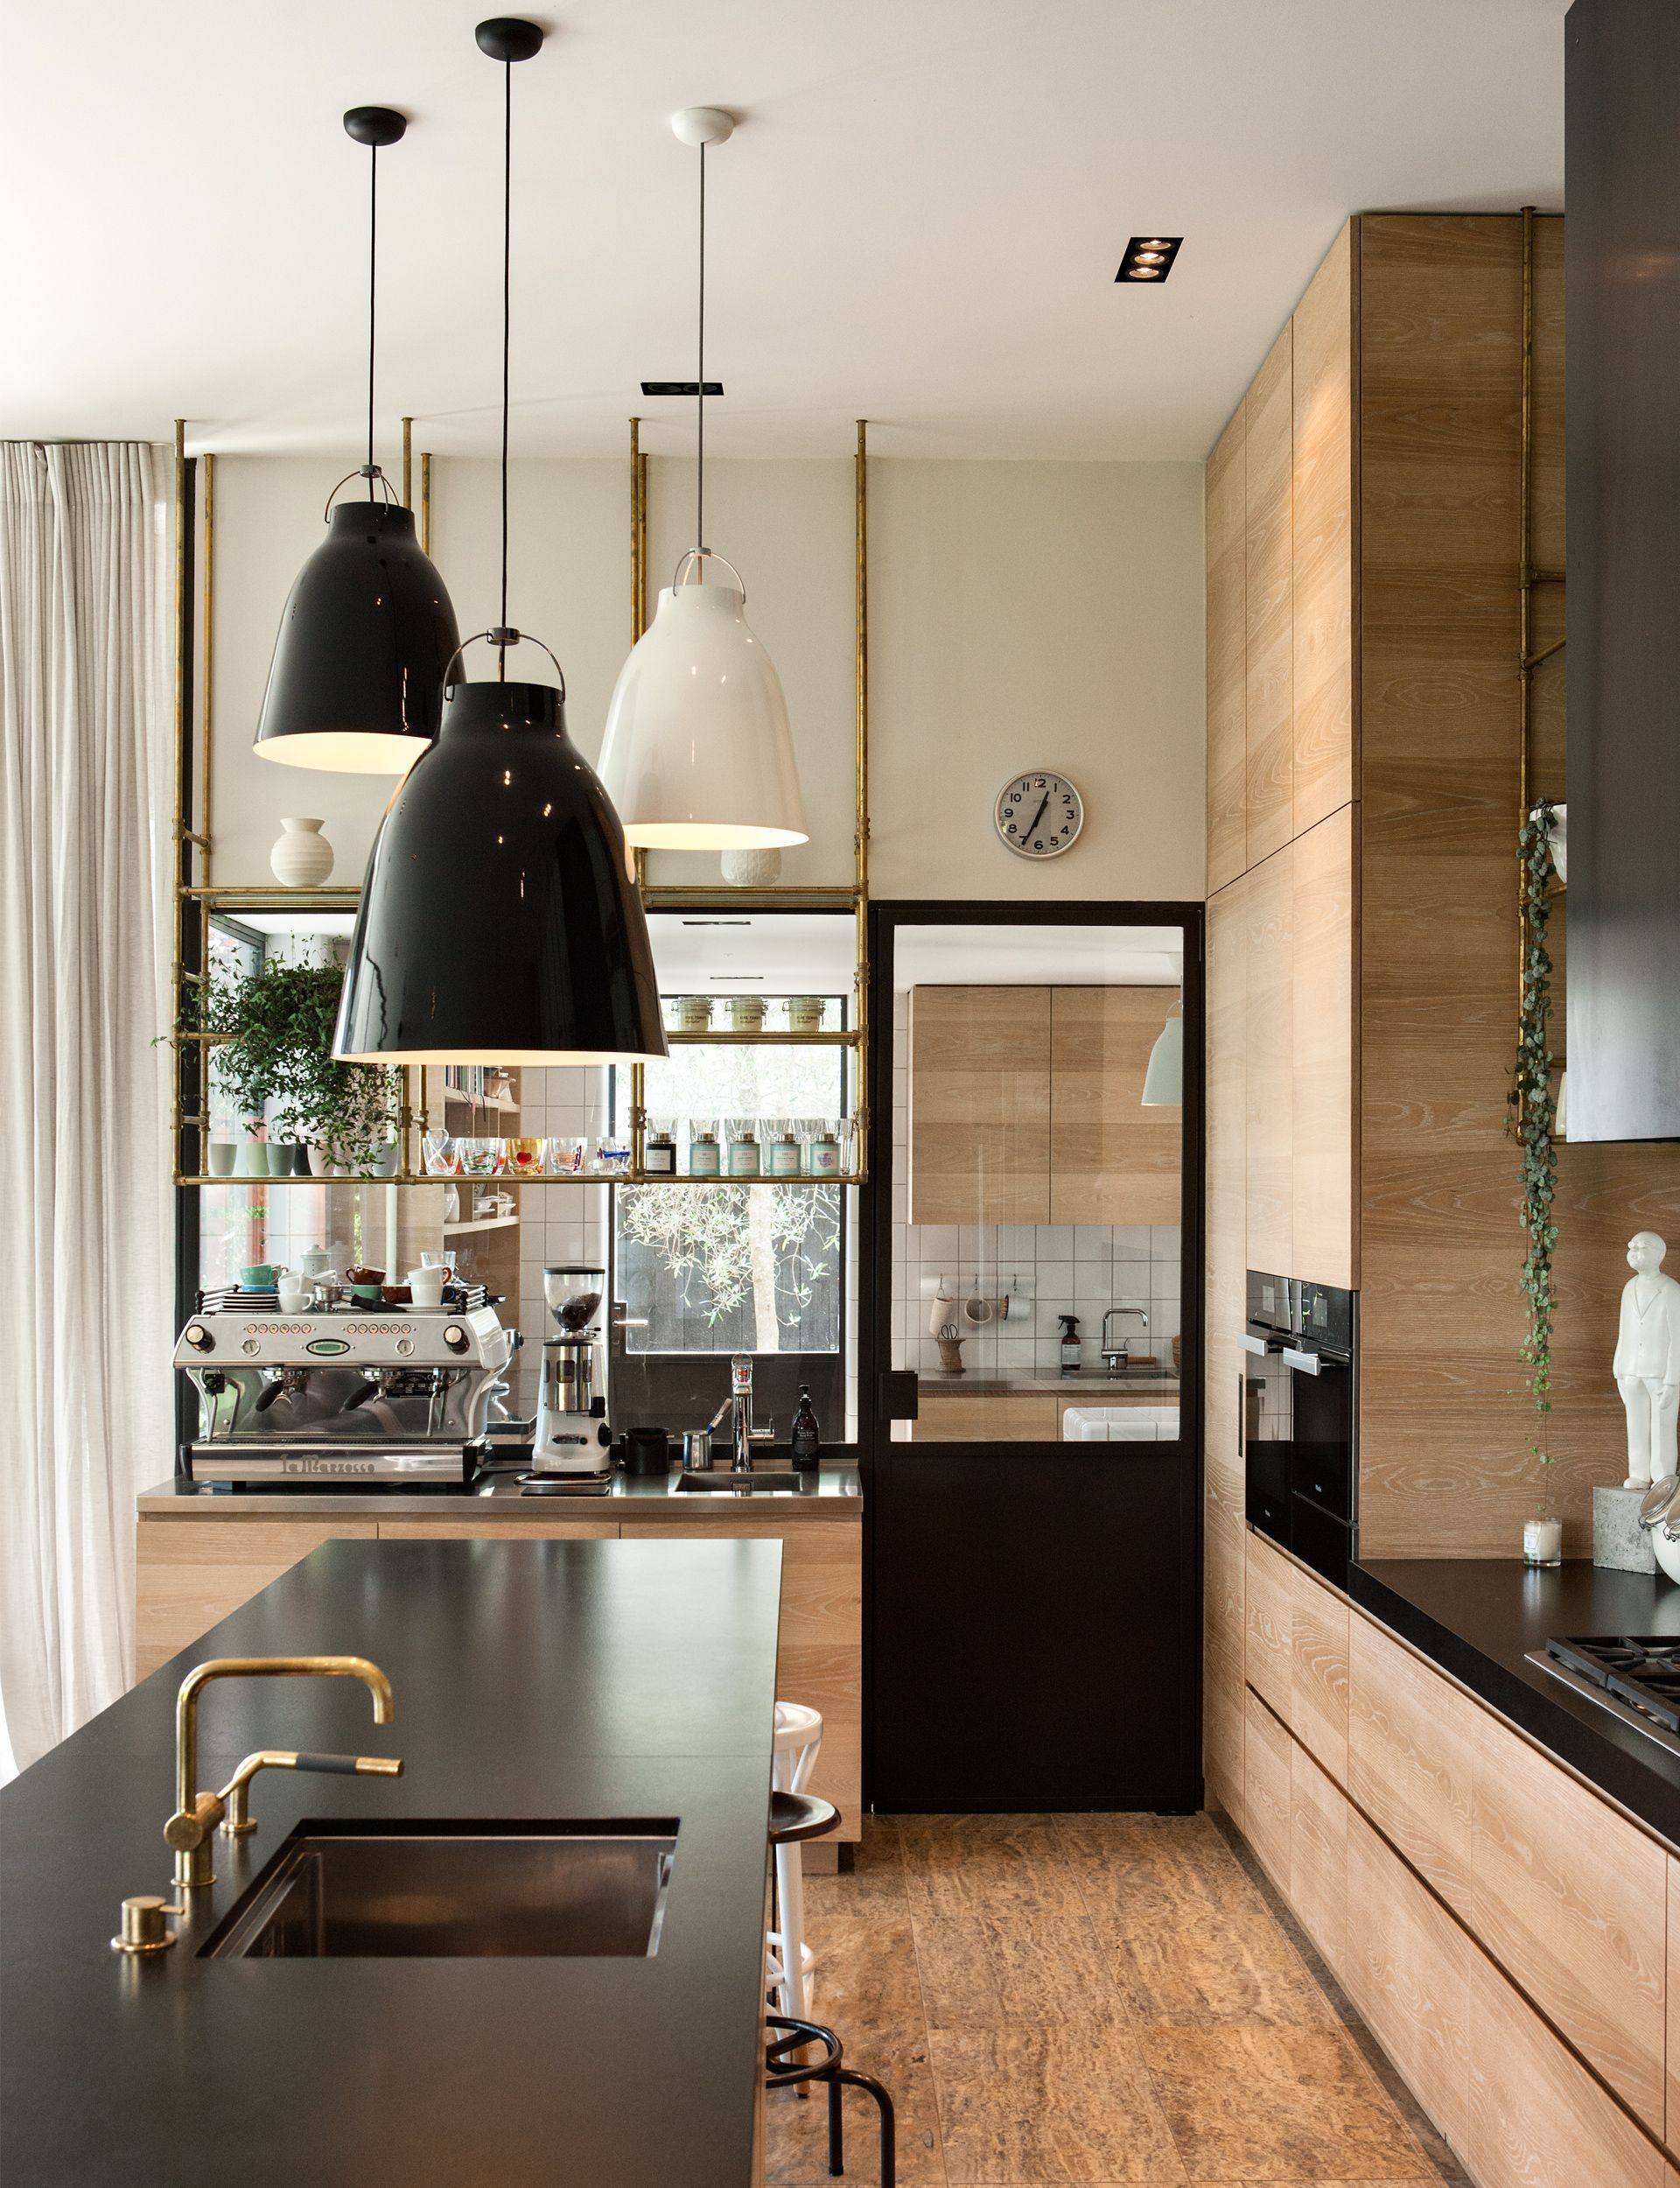 Walnut Cabinets With Dark Stainless Steel Countertops  A Luxury